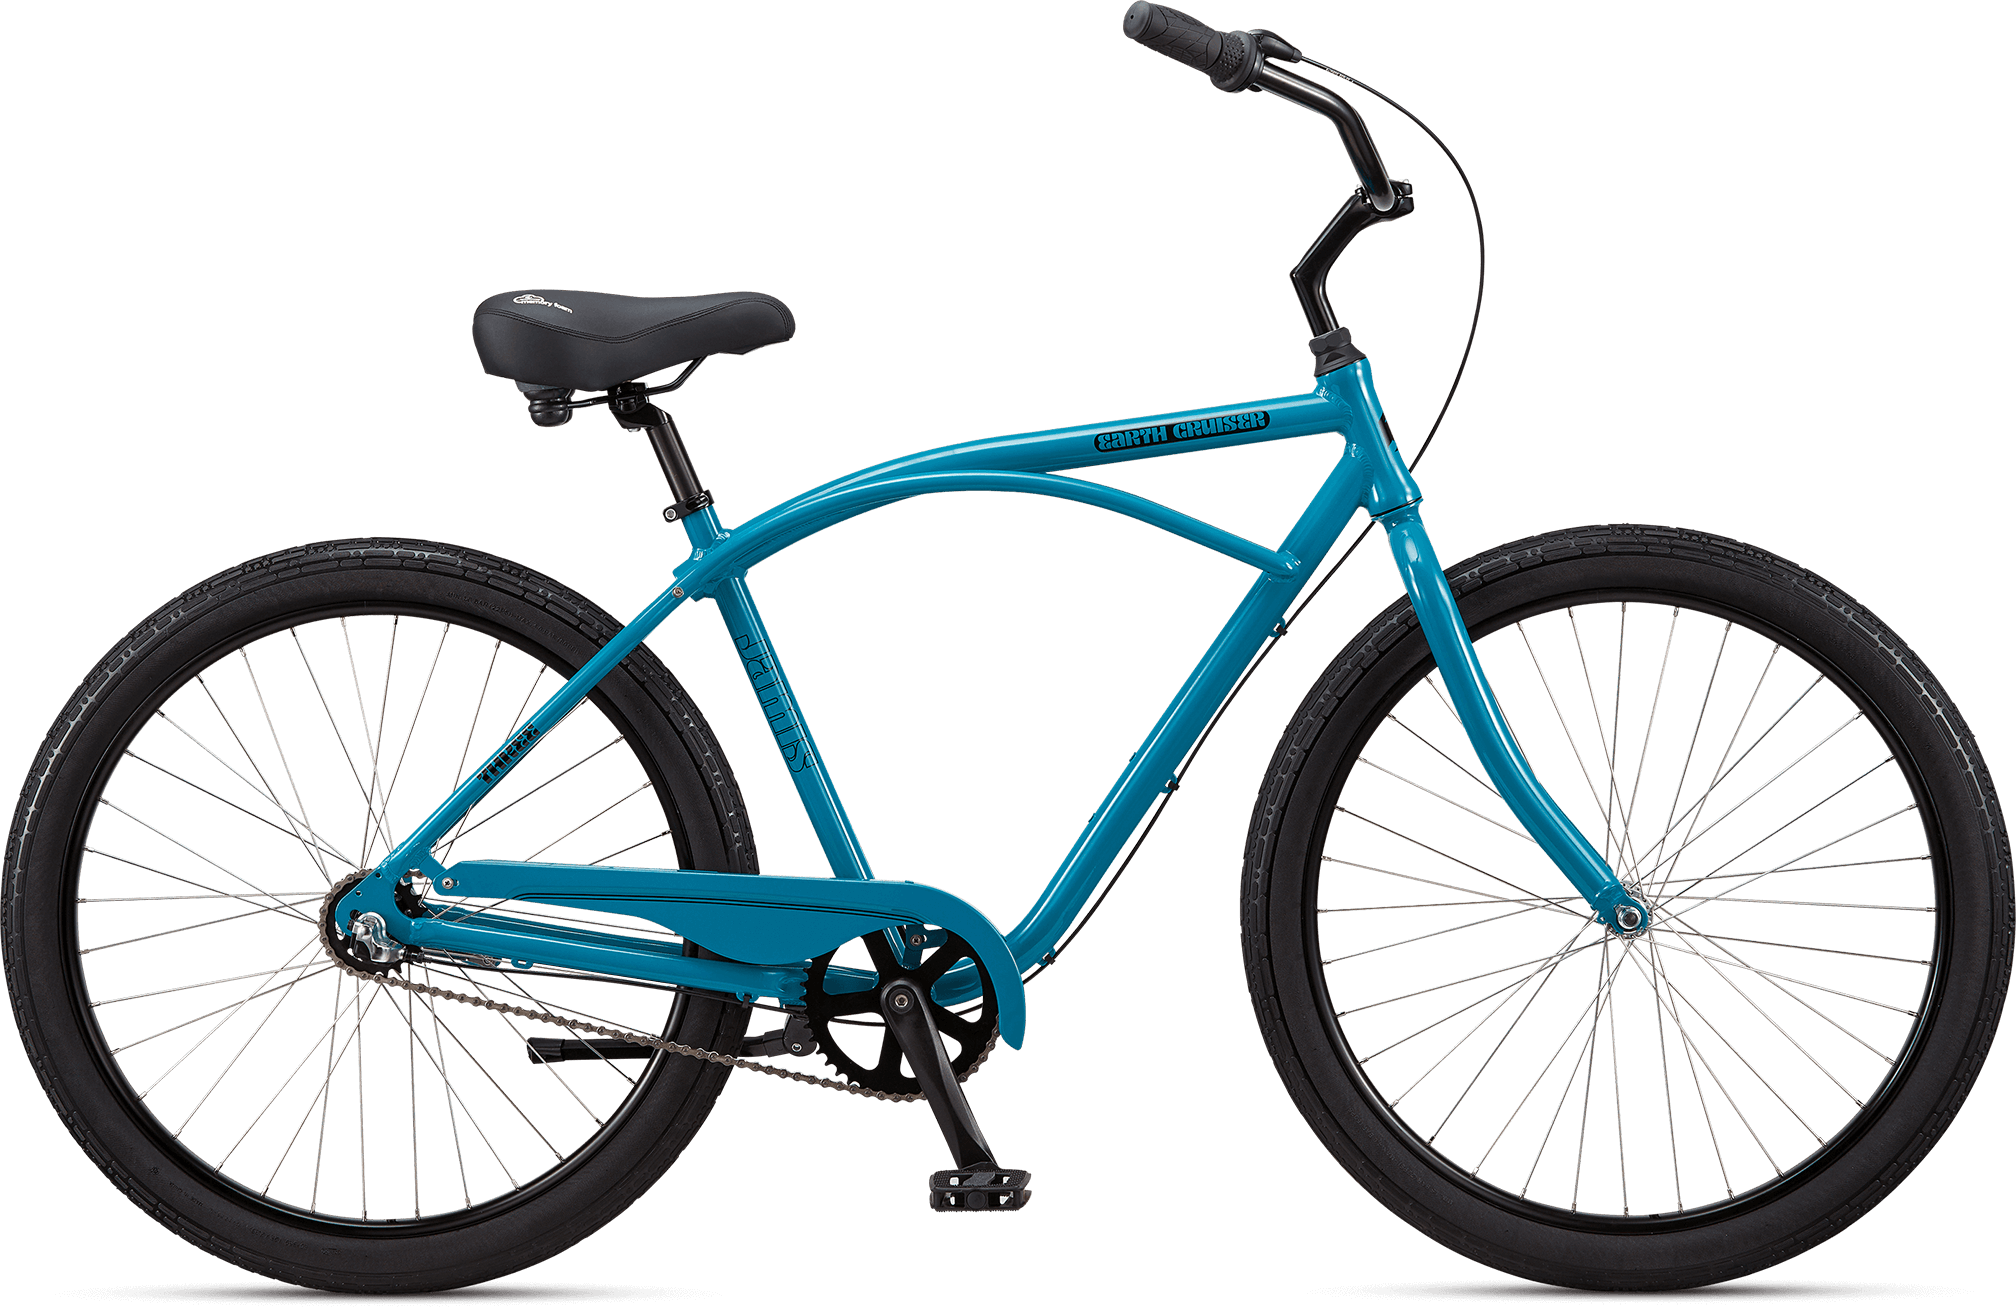 Jamis® Earth Cruiser® 3 Teal Fo' Real